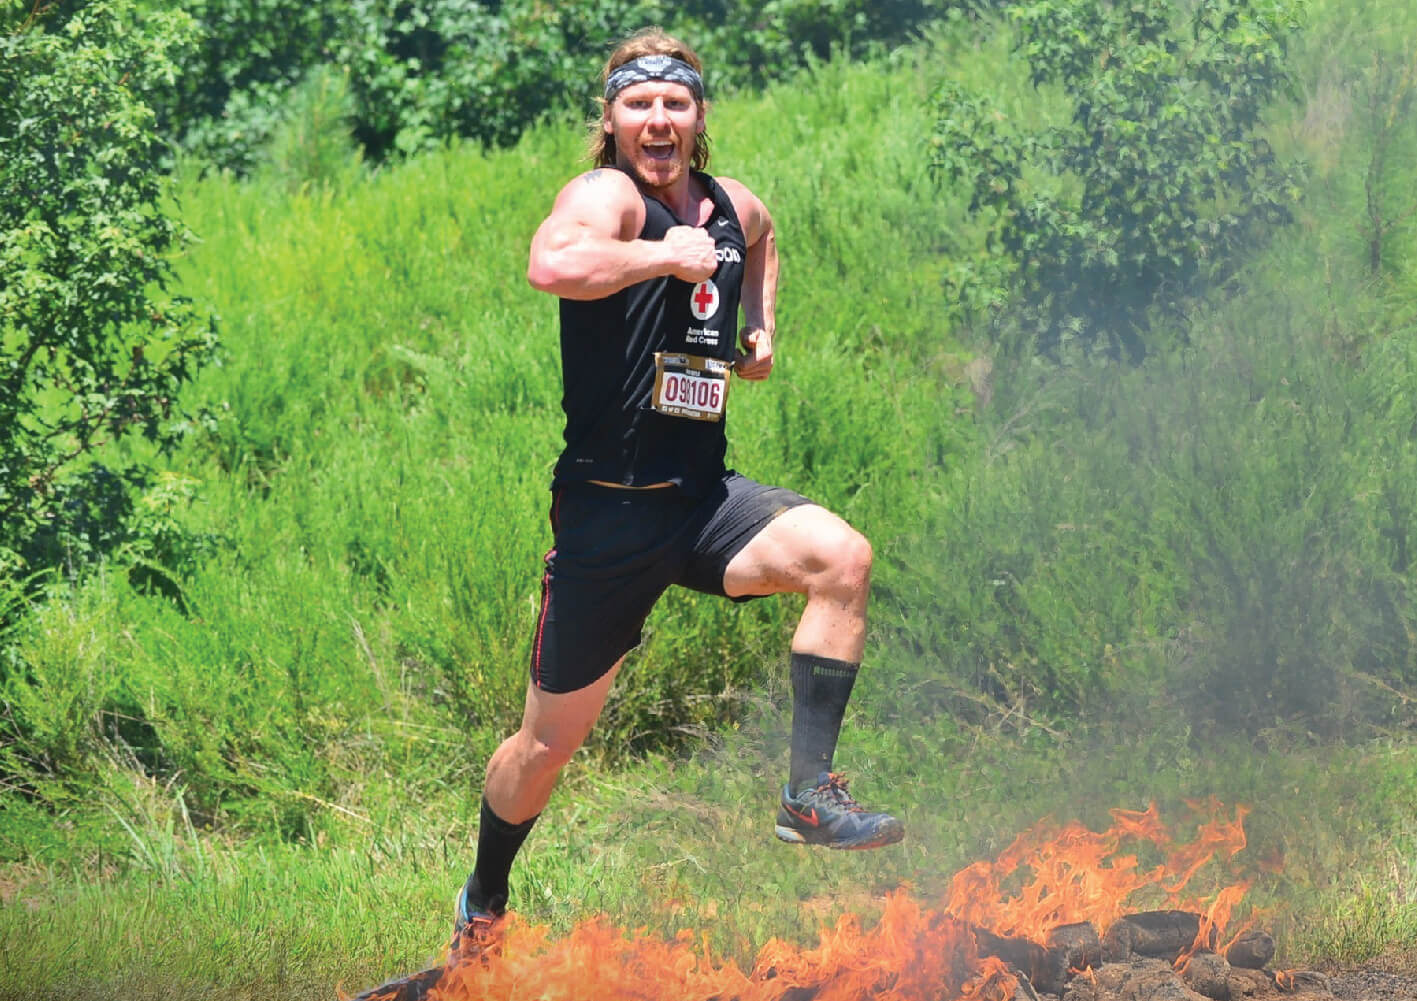 Spenco​ ​brand​ ​ambassador,​ ​Brian​ ​Boyle​ ​flexing​ ​his​ ​muscles​ ​after​ ​a​ ​race